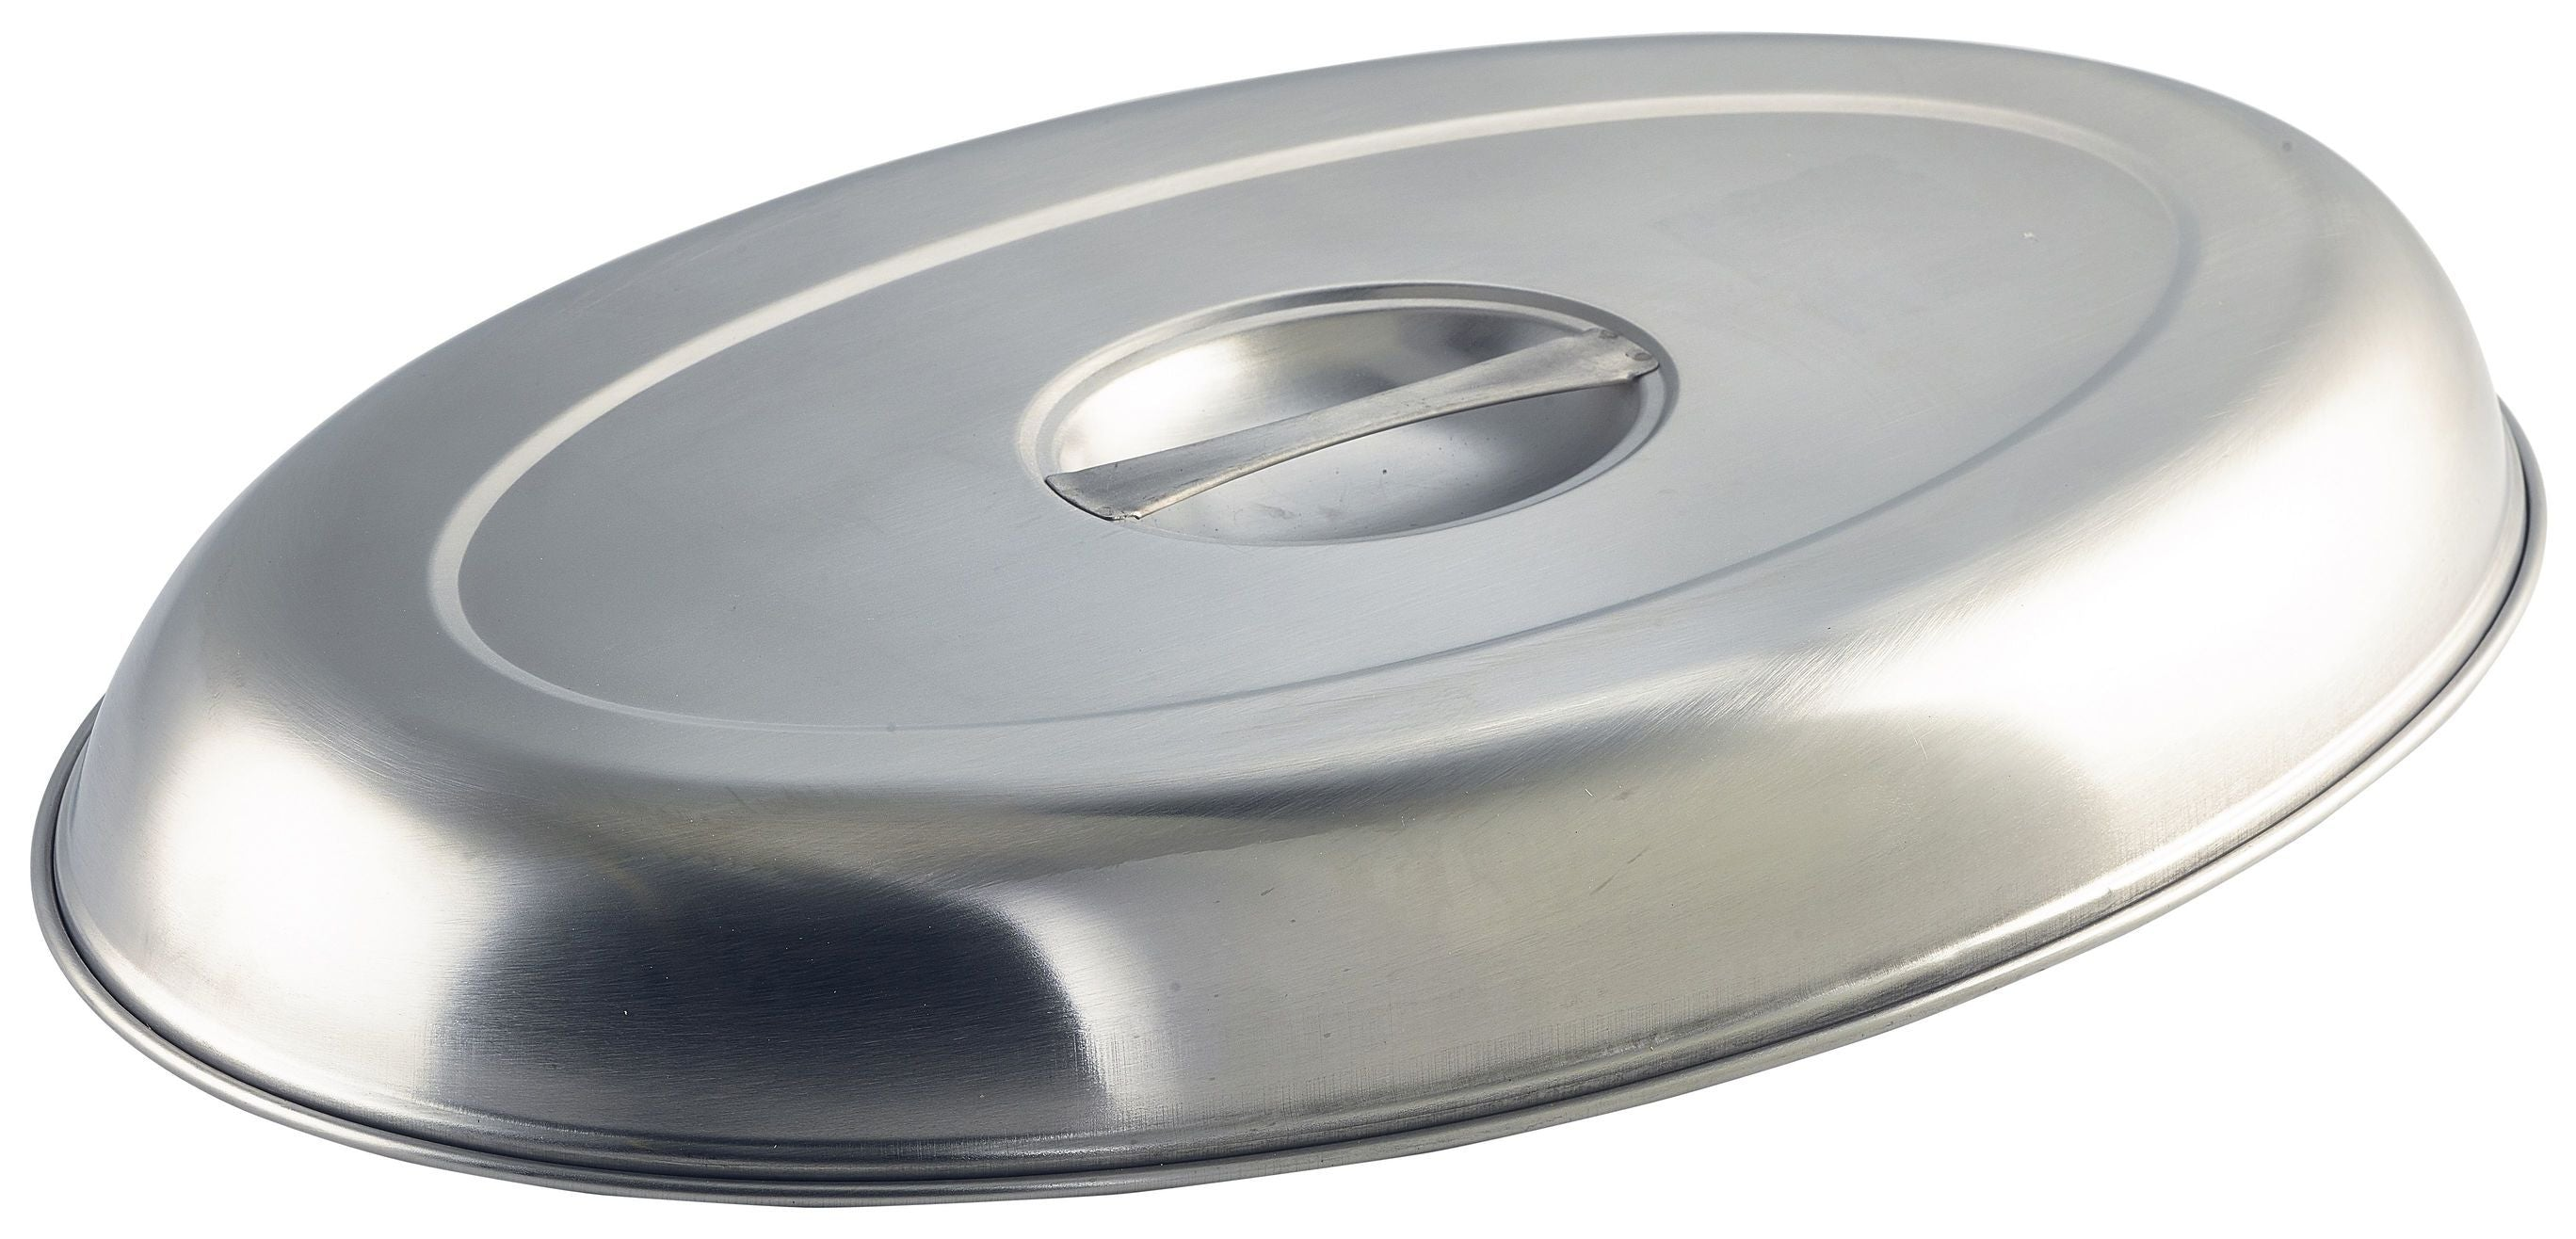 GenWare Stainless Steel Cover For Oval Vegetable Dish 25cm/10""